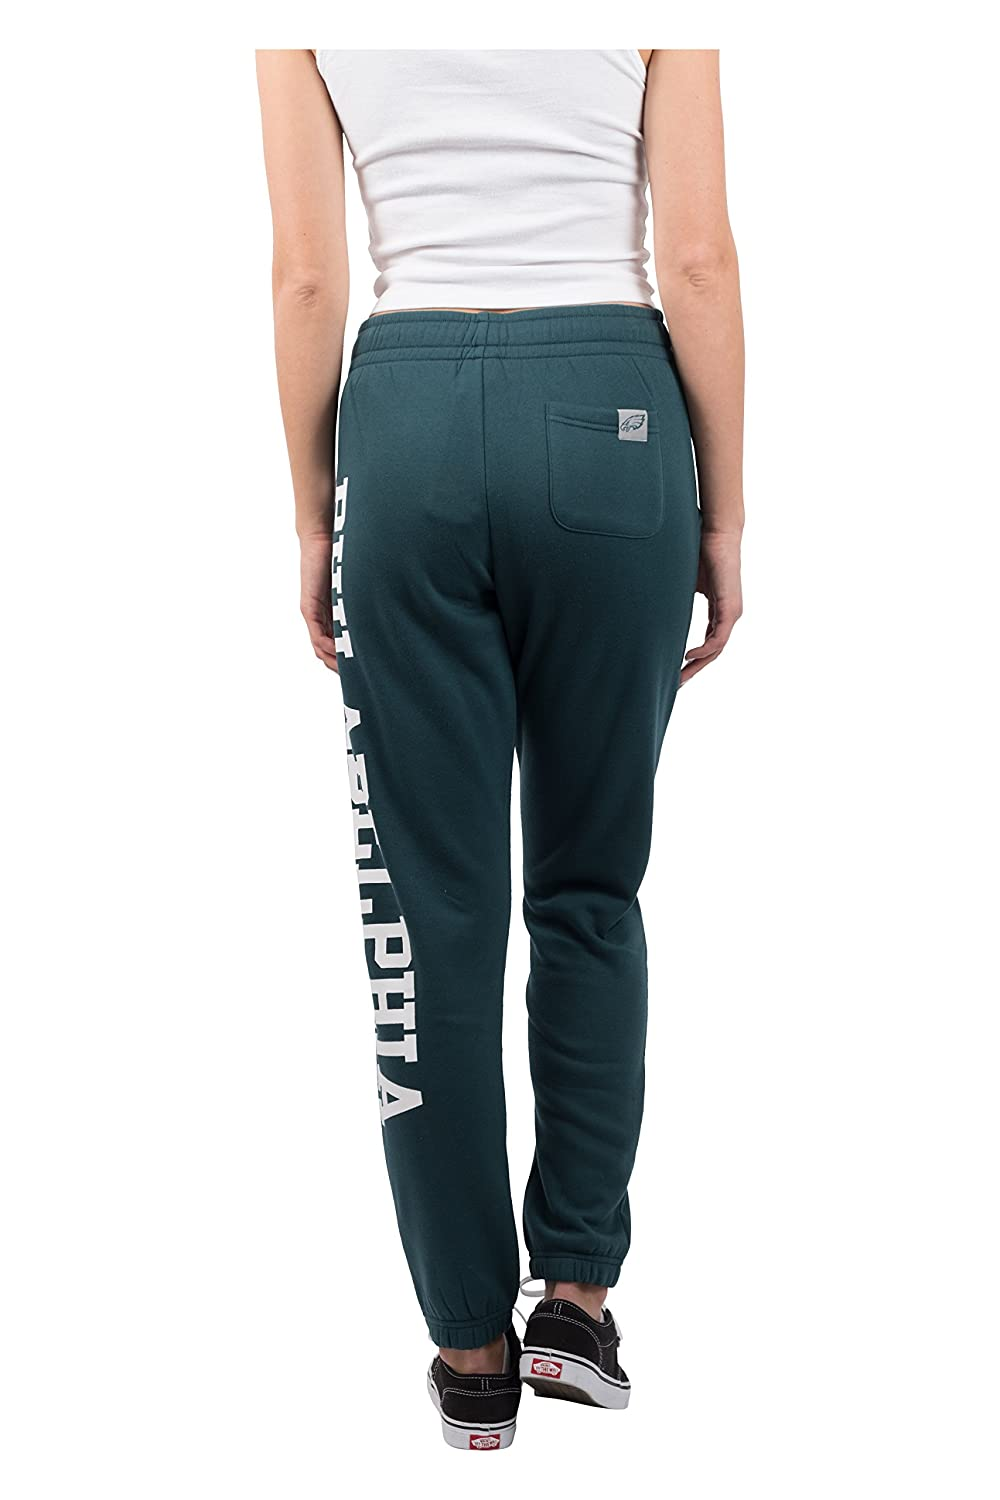 NFL Philadelphia Eagles Ultra Game Womens RELAXED FIT JOGGER Small Team Color